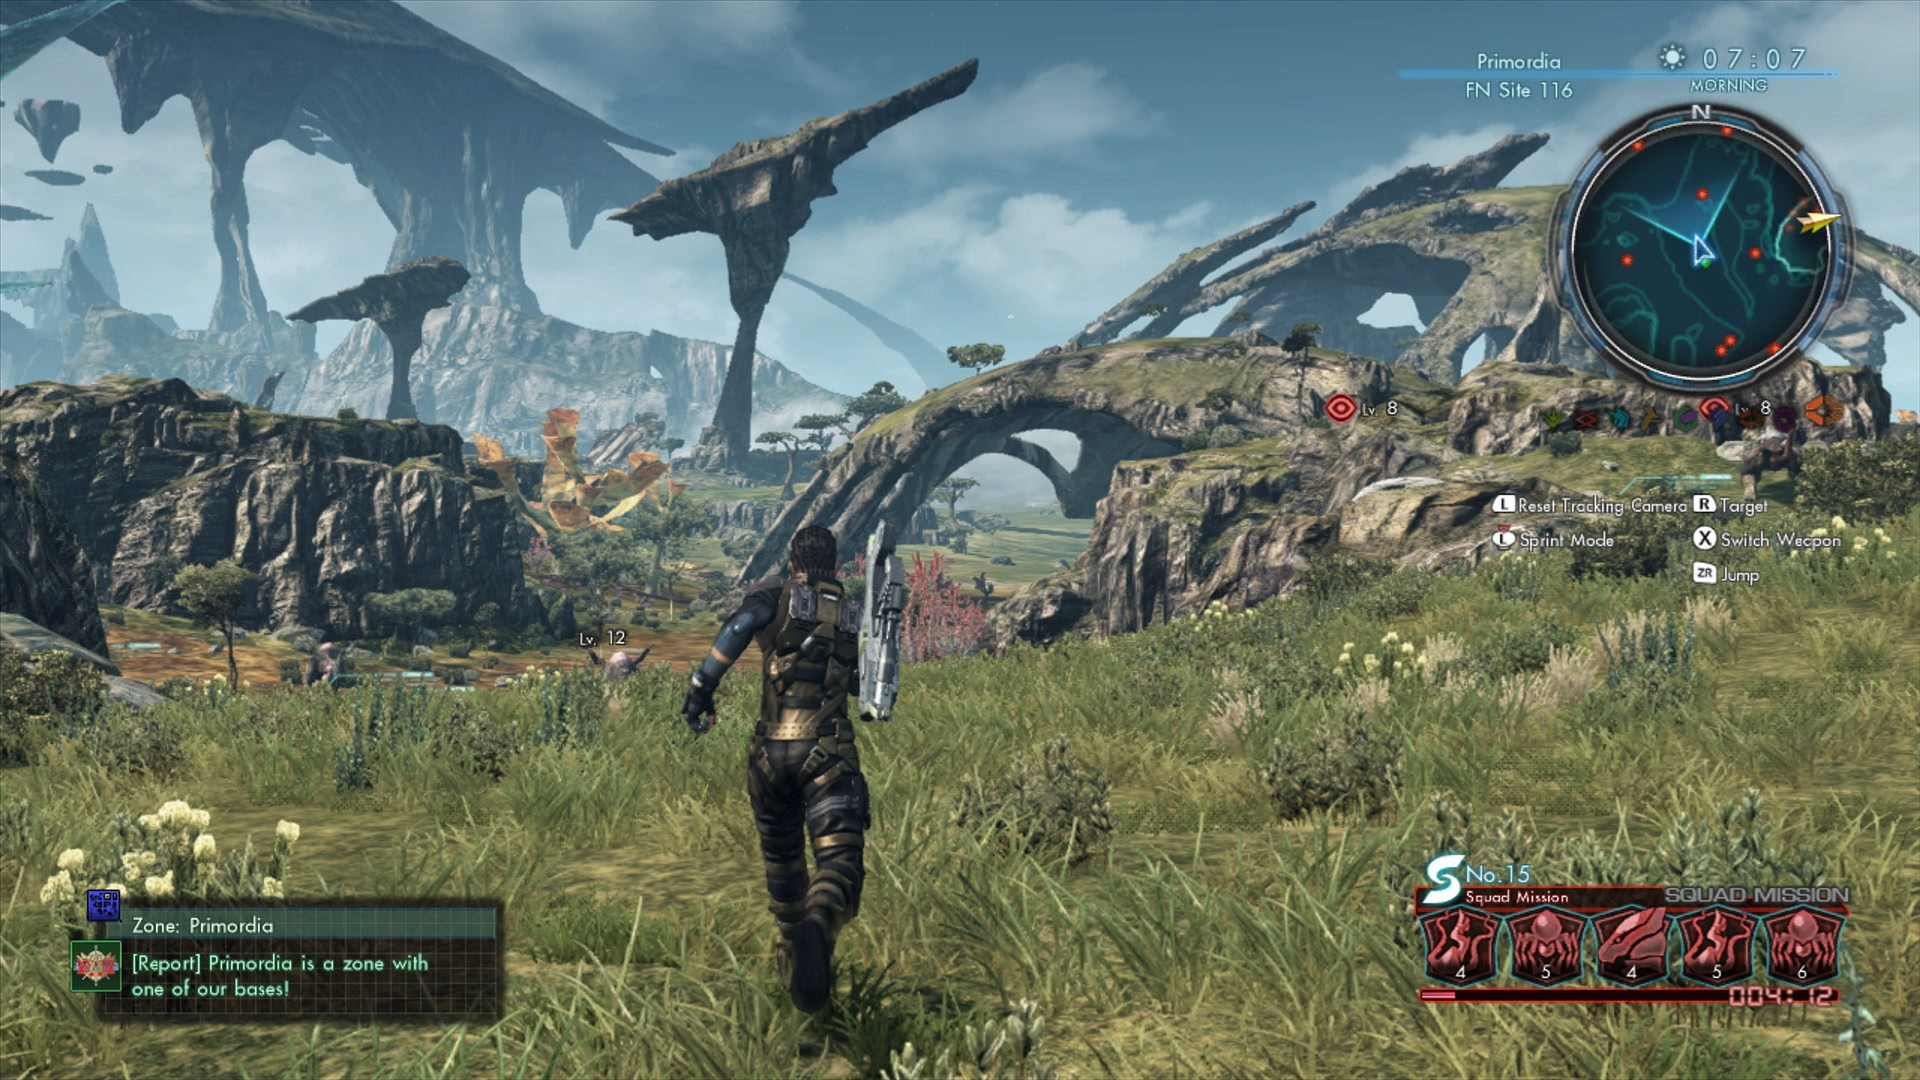 The Landscapes in Xenoblade Chronicles X are breathtaking.